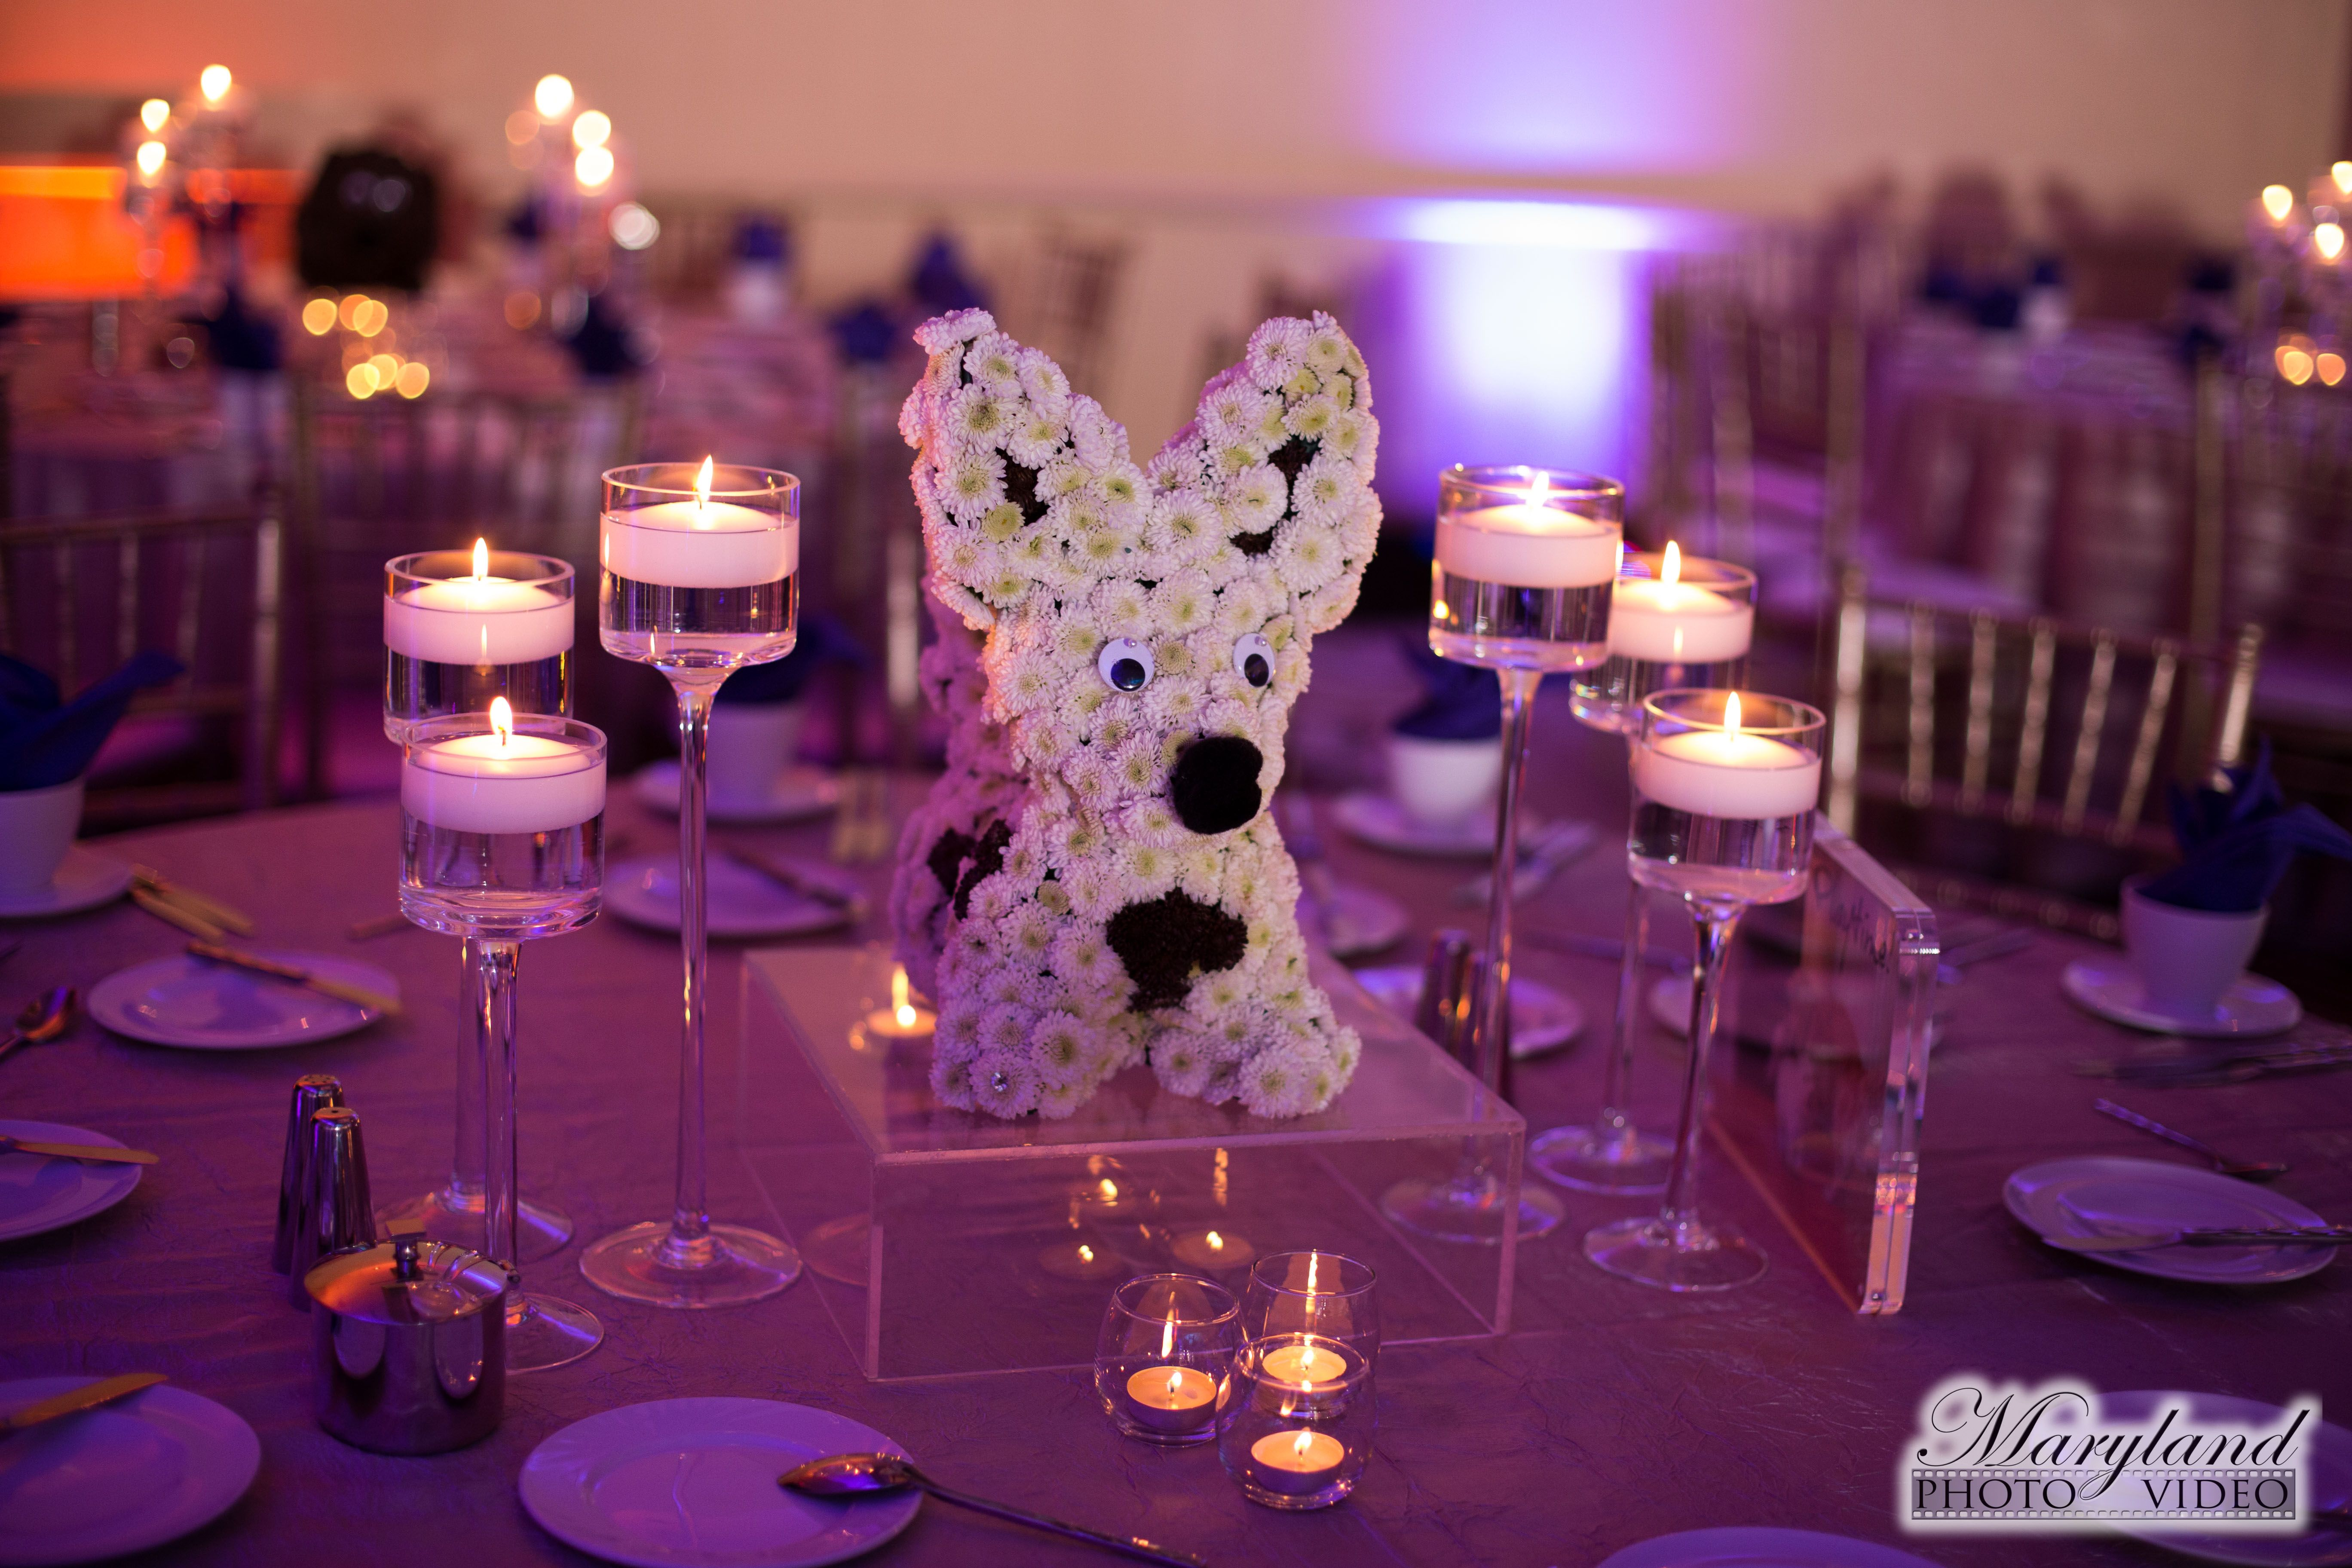 Fl Dog Centerpieces At Themed Bat Mitzvah Party Westin Tysons Corner Pop Color Events Adding A Of To Bar Mitzvahs In Dc